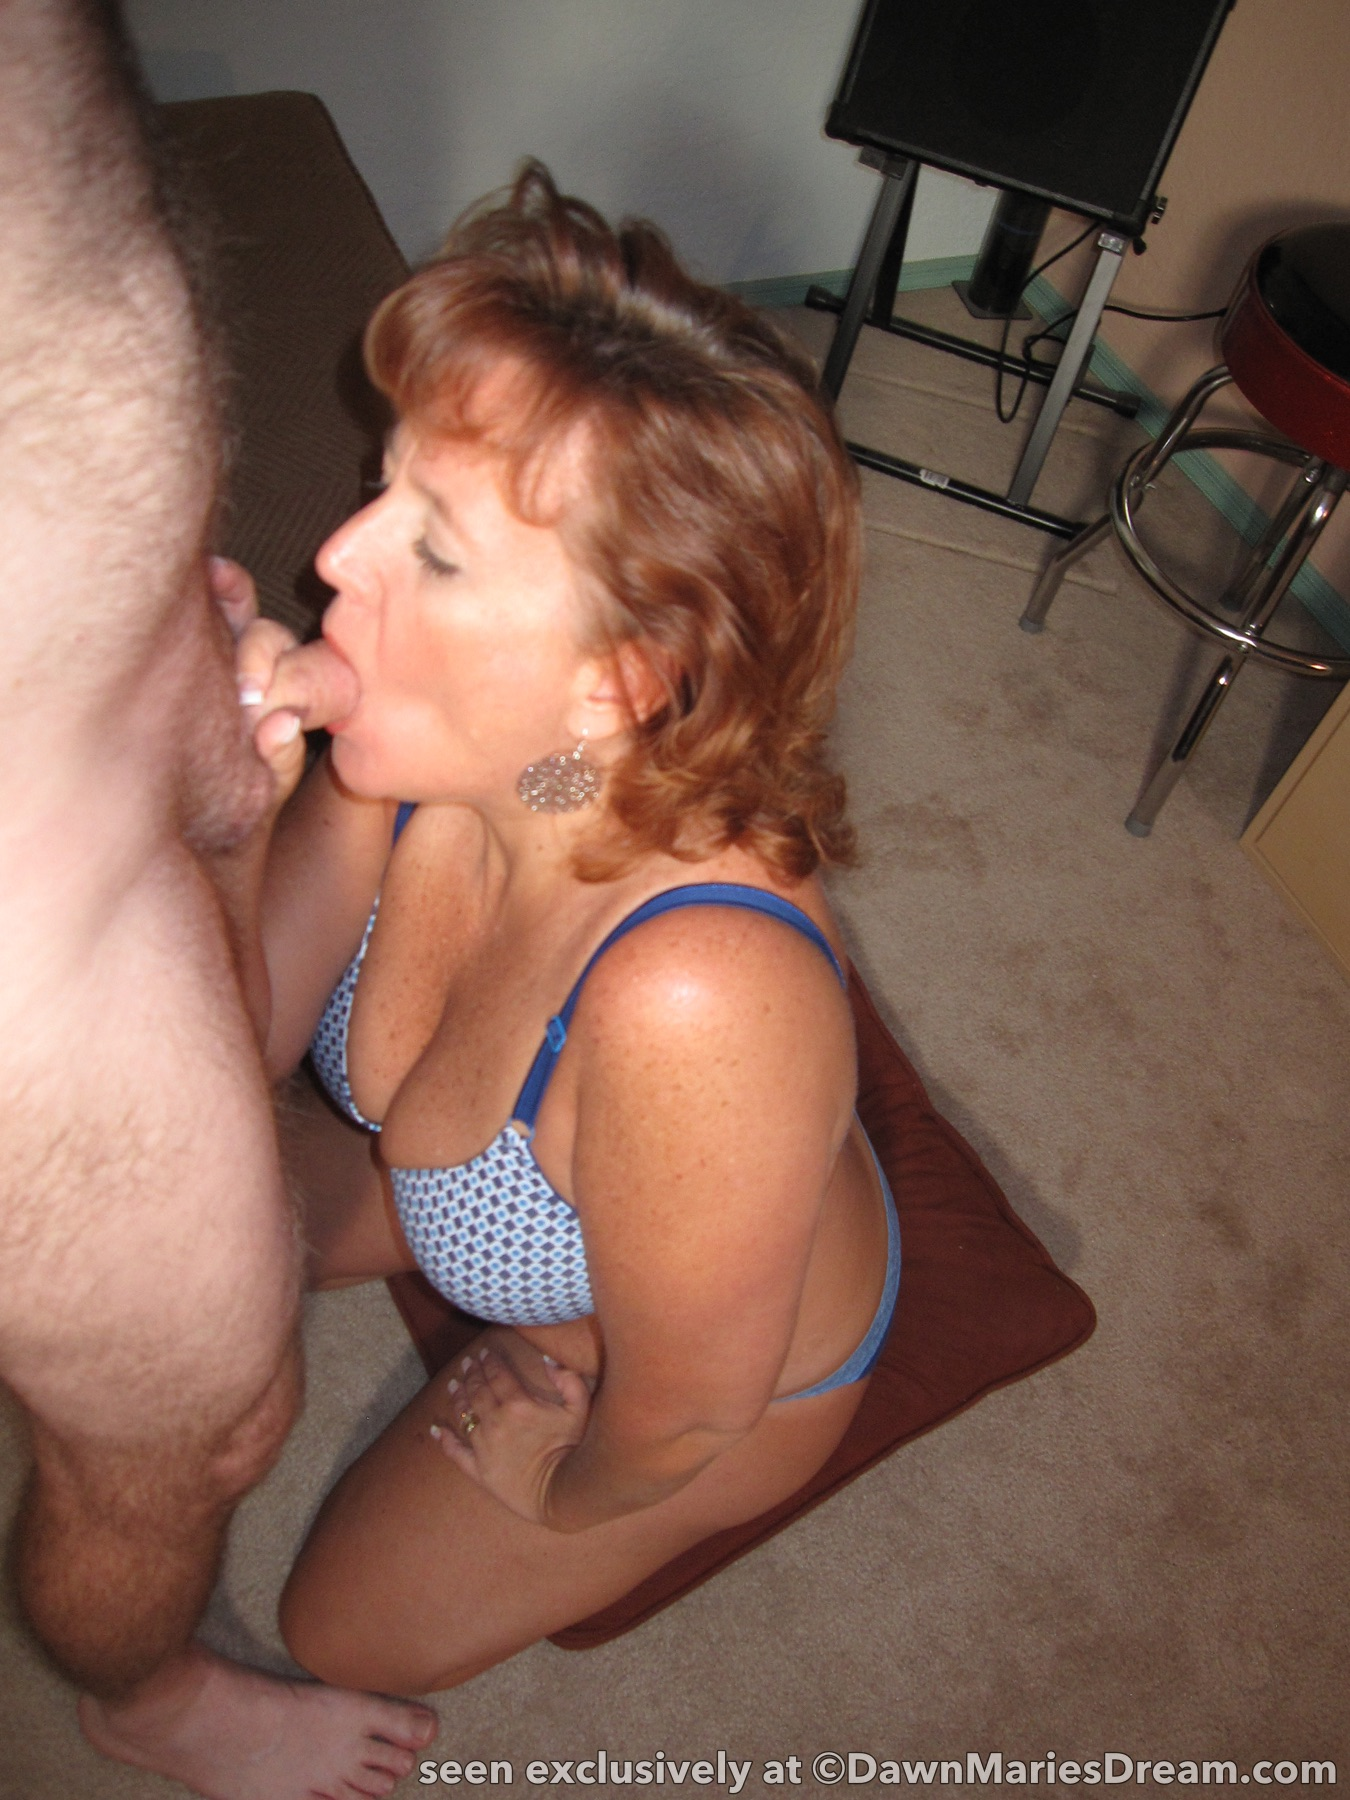 Dinner party adult movie